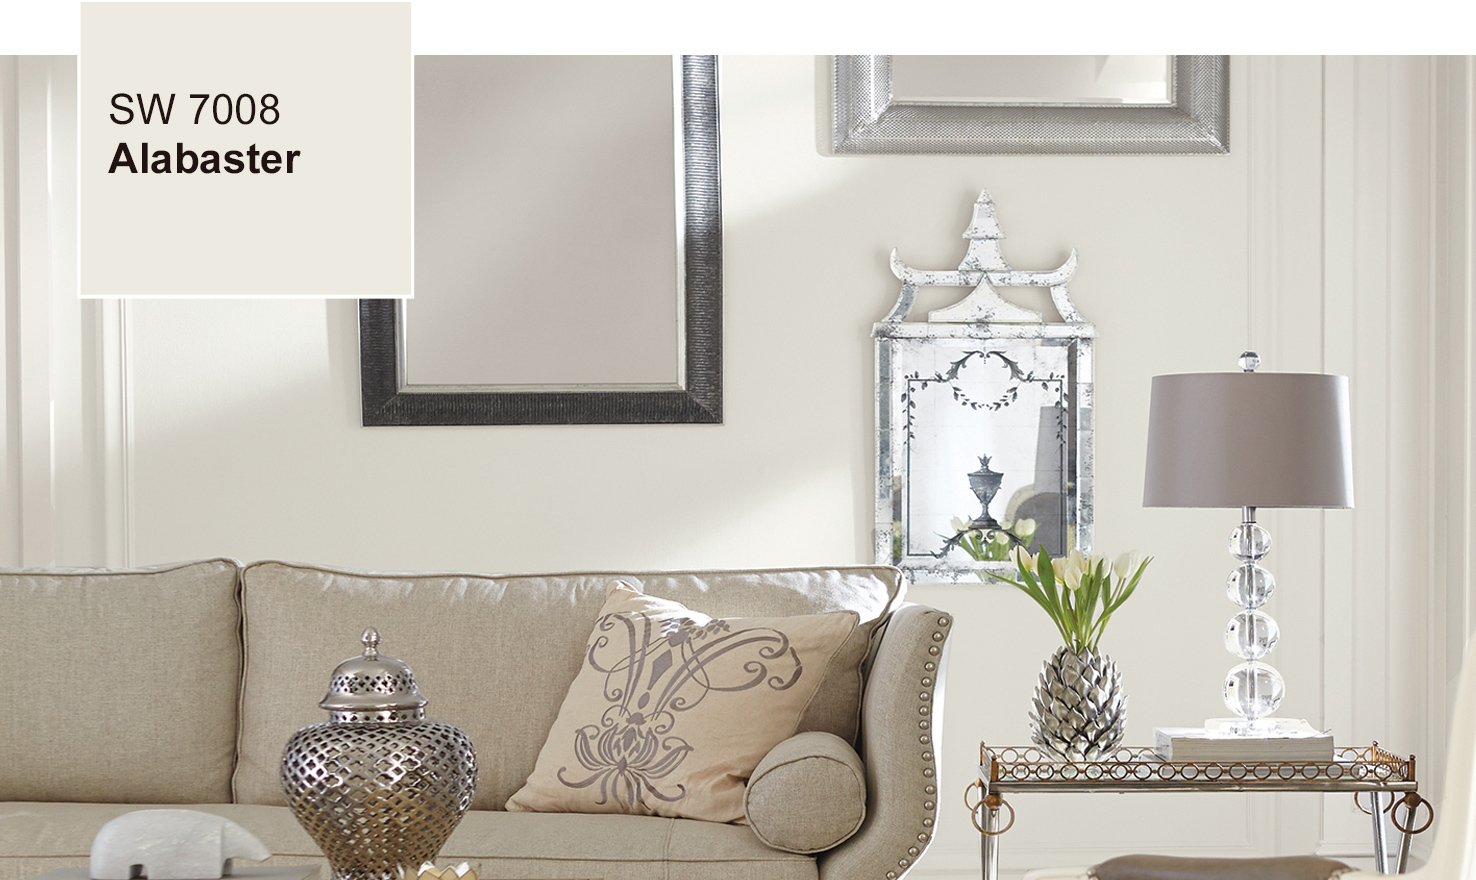 Best-warm-white-paint-colors-add-value-to-your-home